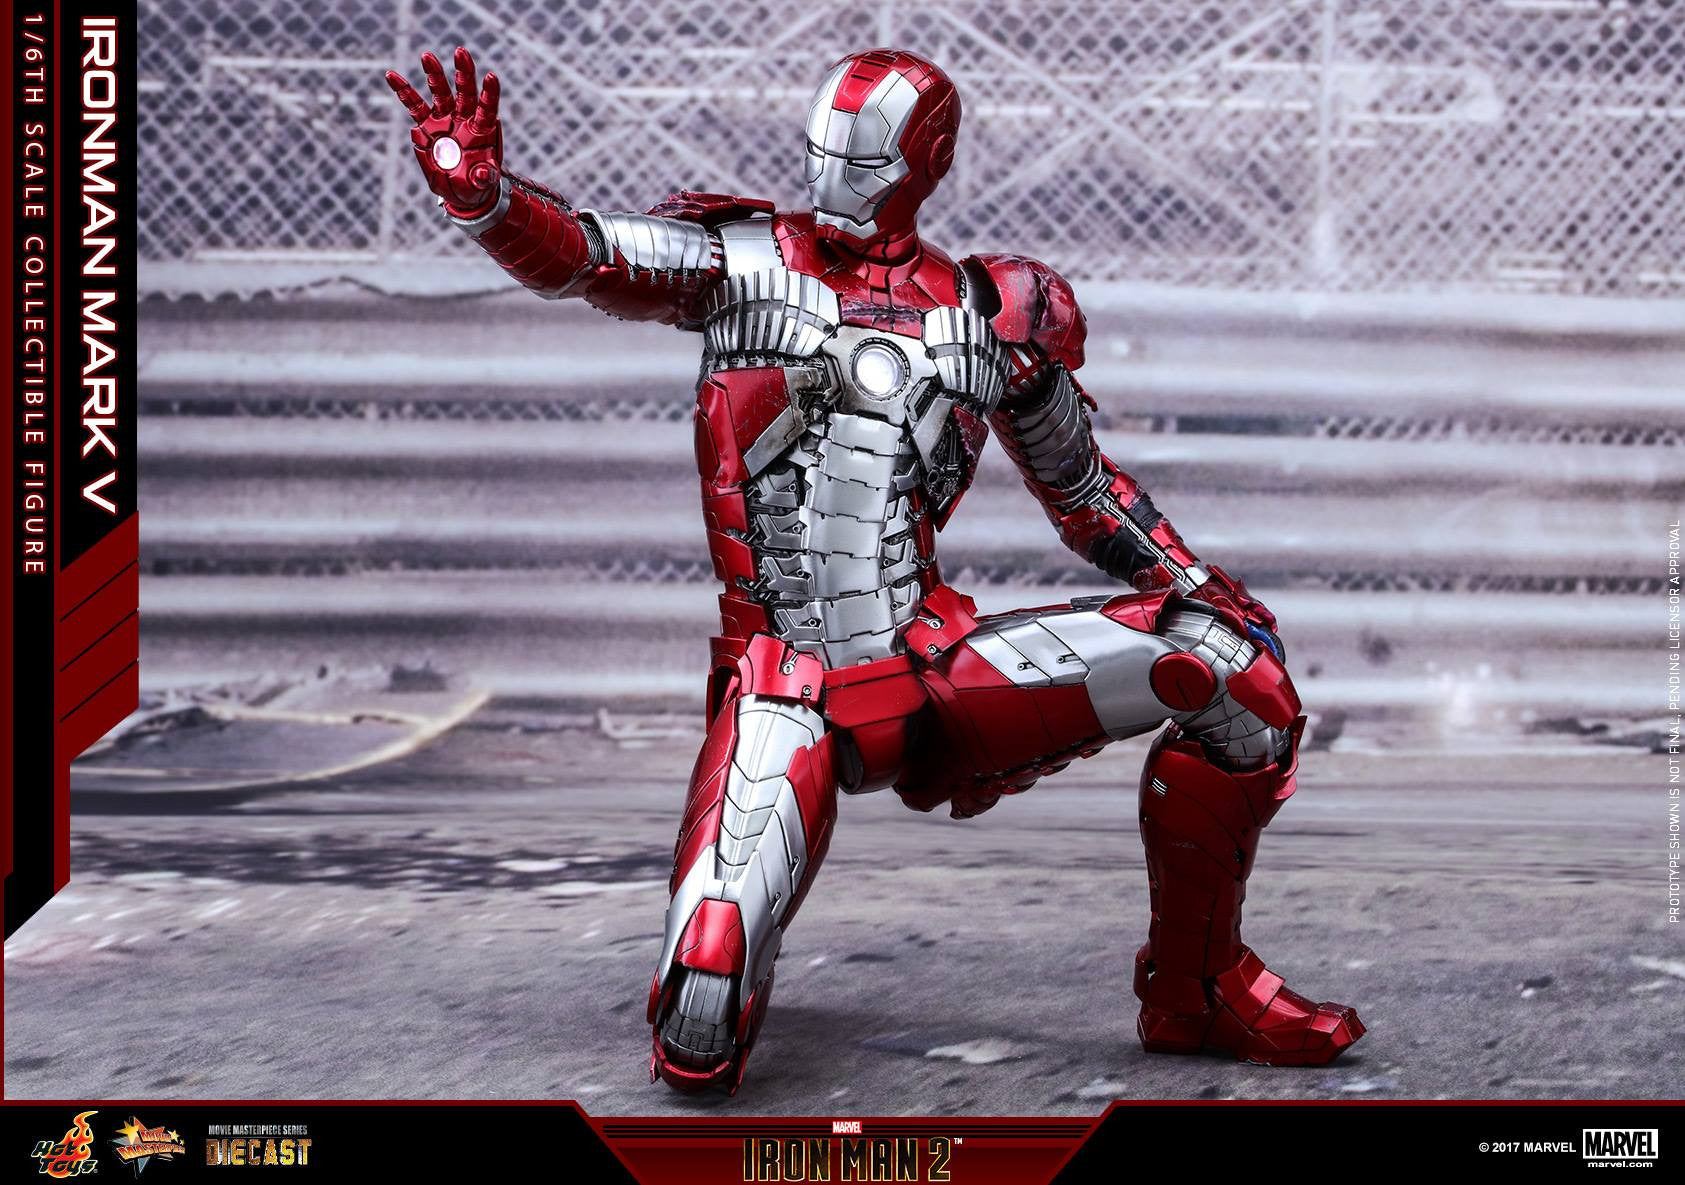 Hot Toys - MMS400D18 - Iron Man 2 - Mark V (DIECAST) - Marvelous Toys - 21